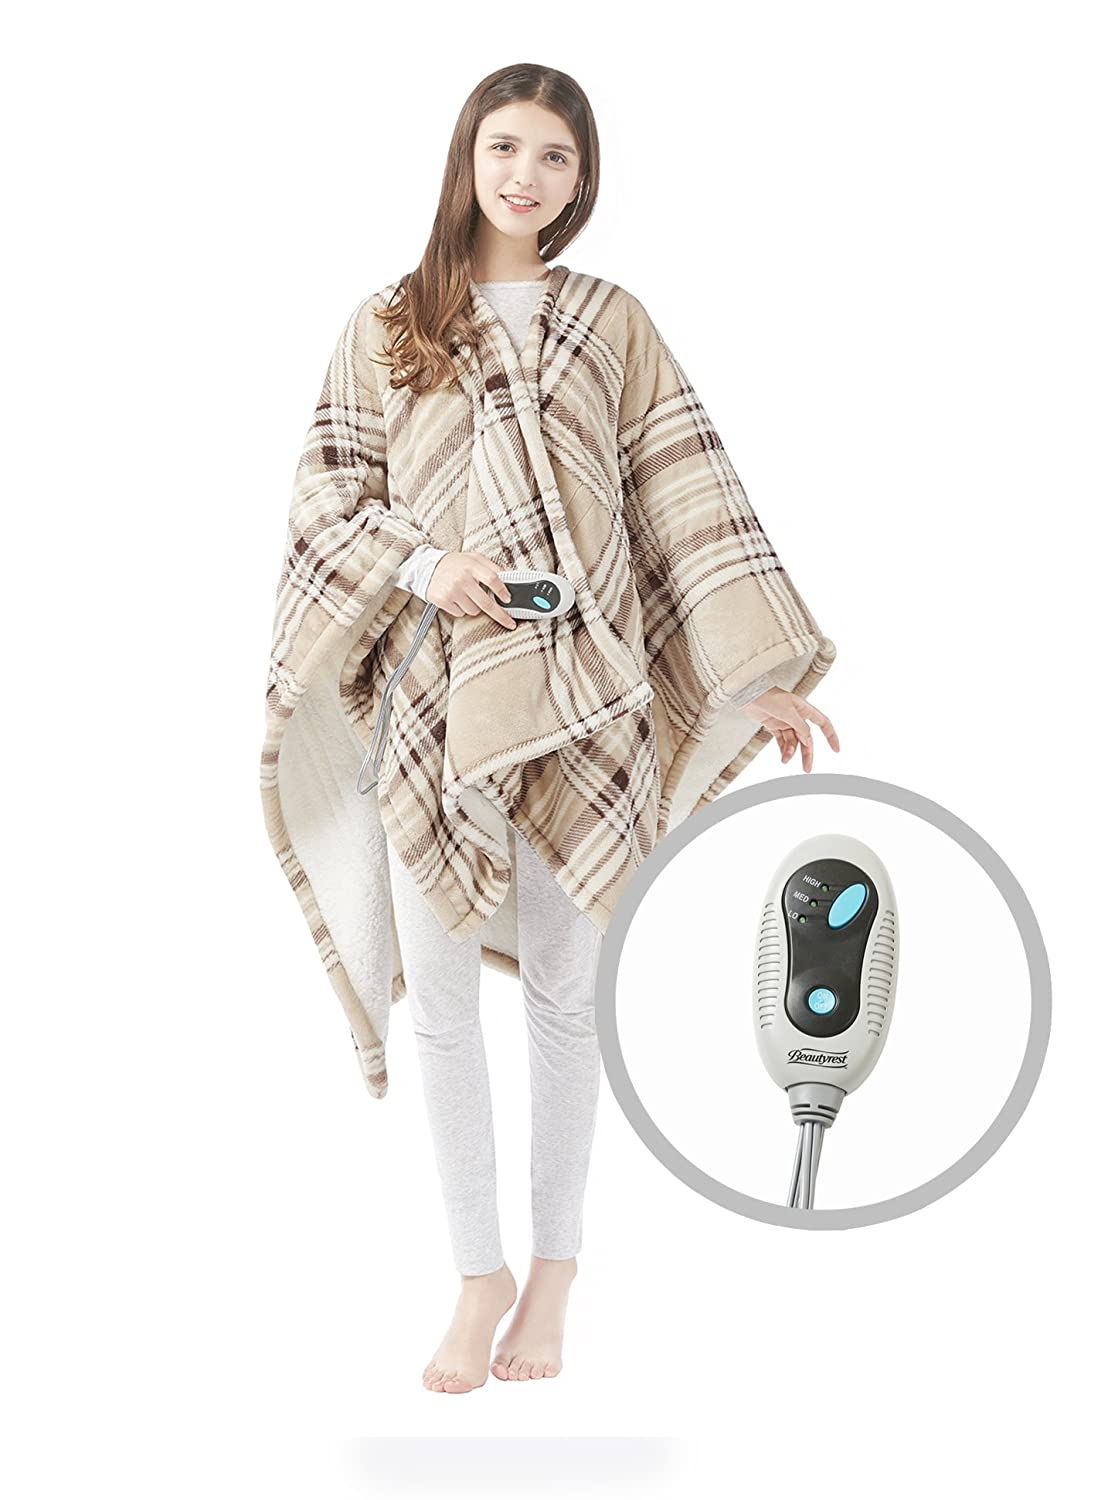 "Beautyrest Ultra Soft Sherpa Berber Fleece Electric Poncho Wrap Blanket Heated Throw with Auto Shutoff, 50"" W x 64"" L, Tan Plaid"